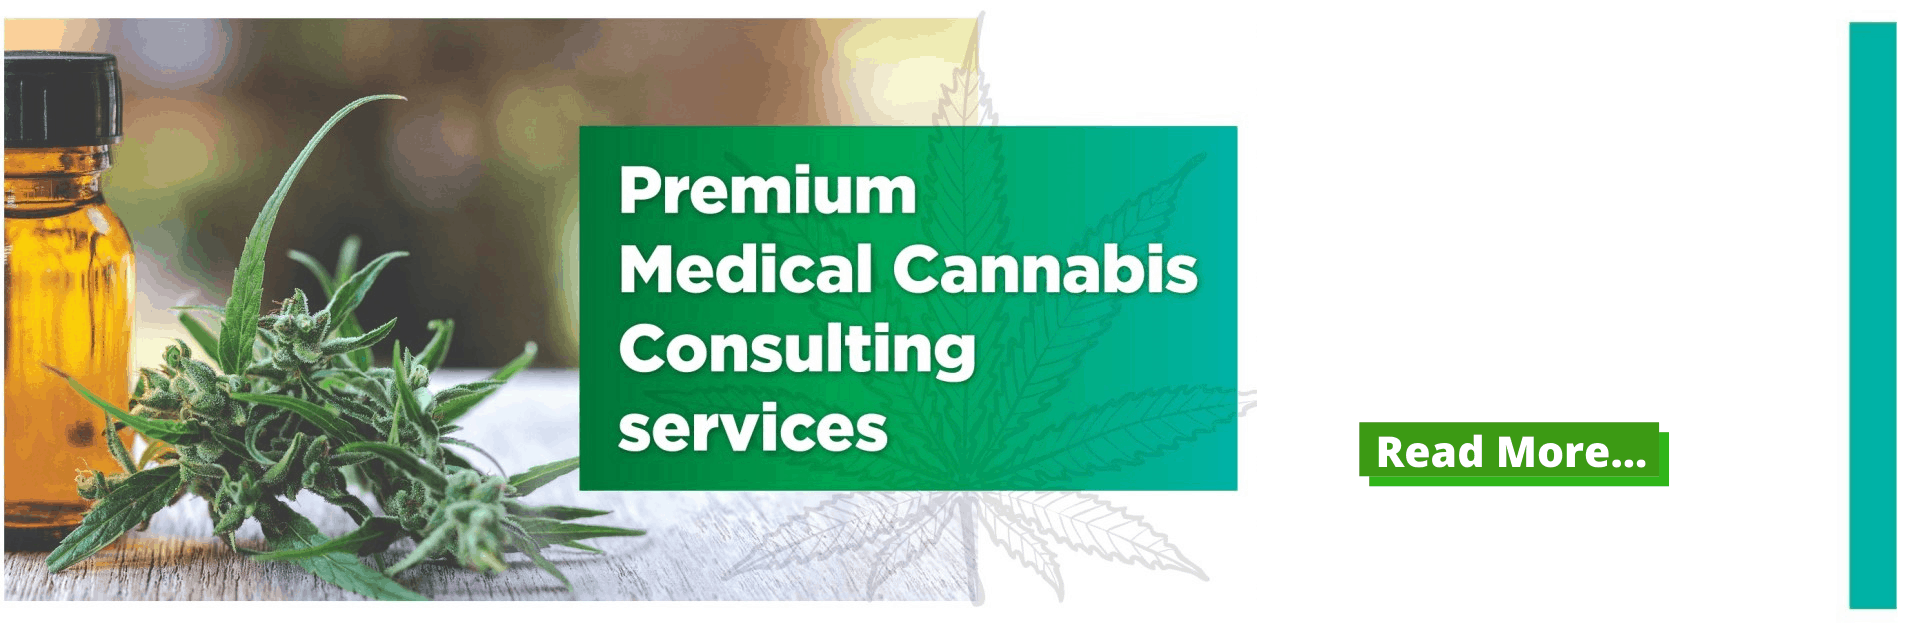 Read More for medical cannabis services Greece